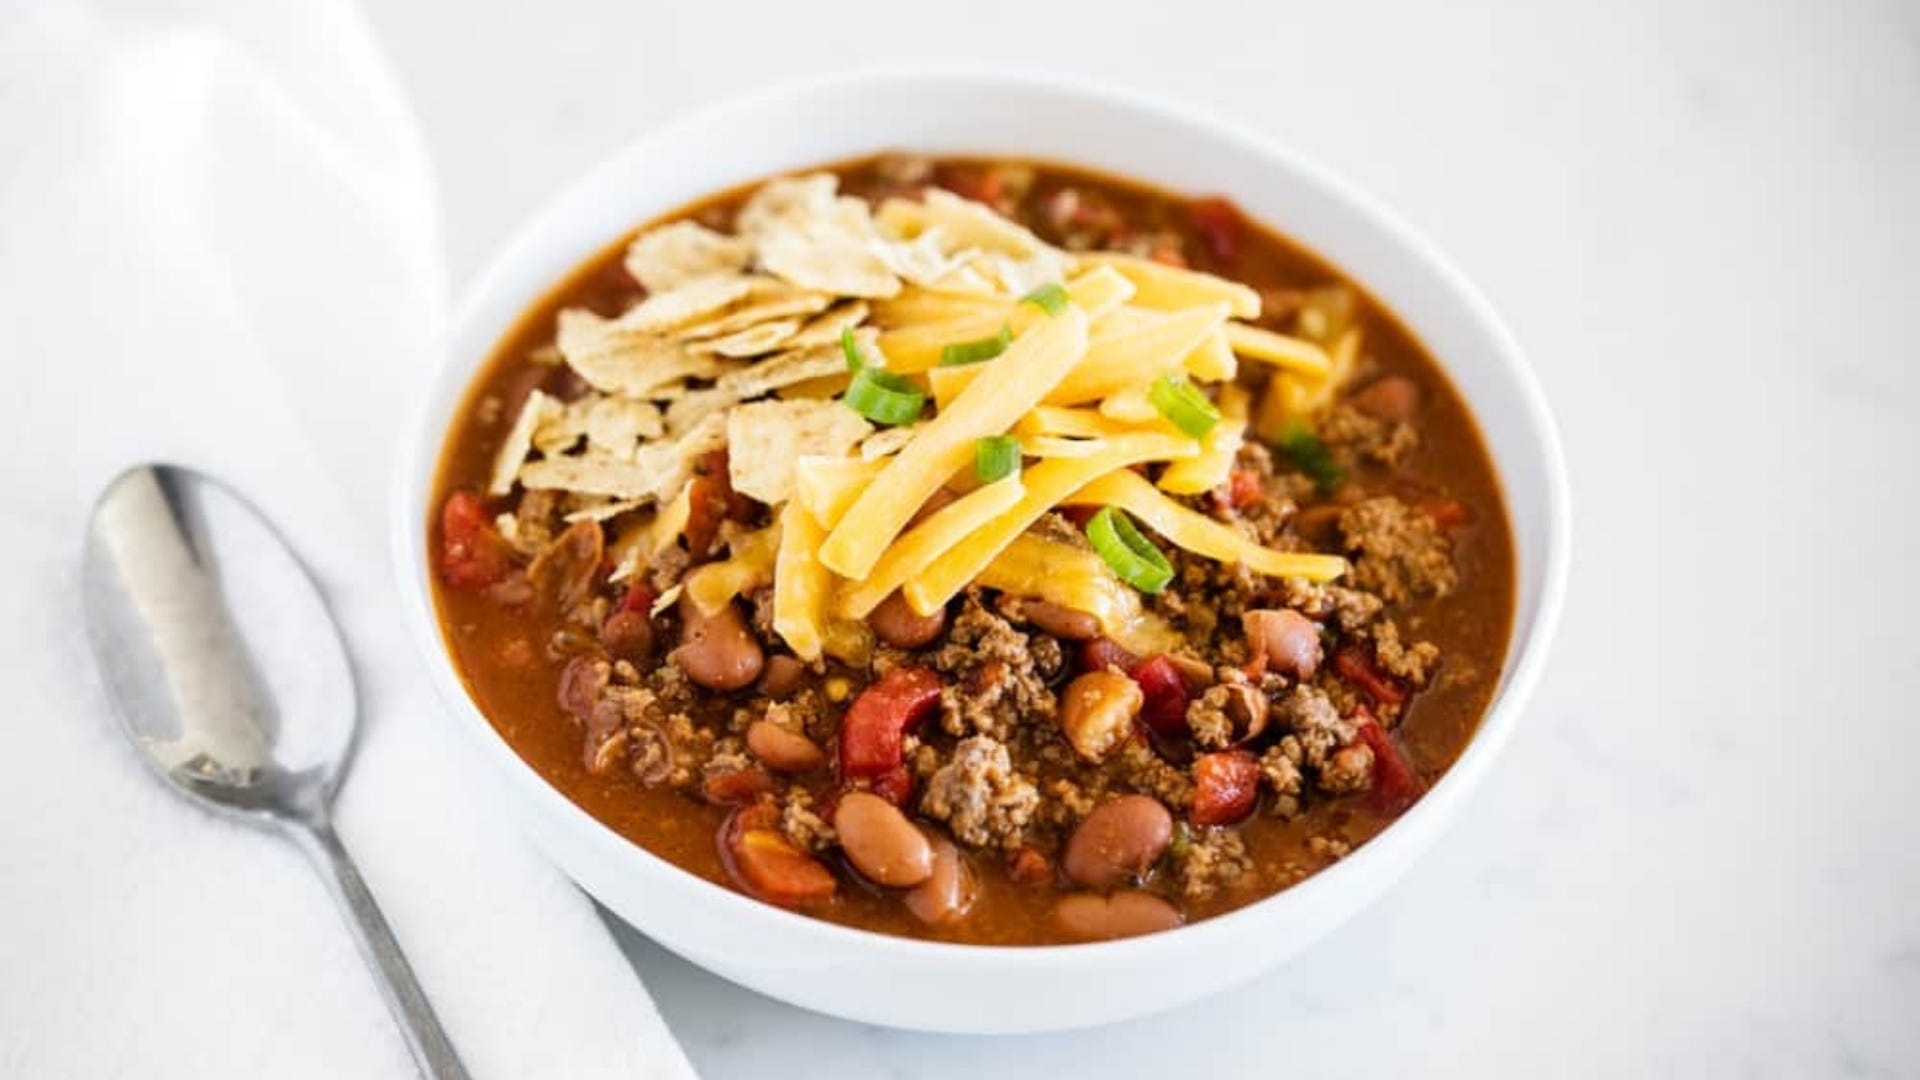 A bowl of chili with cheese on top.